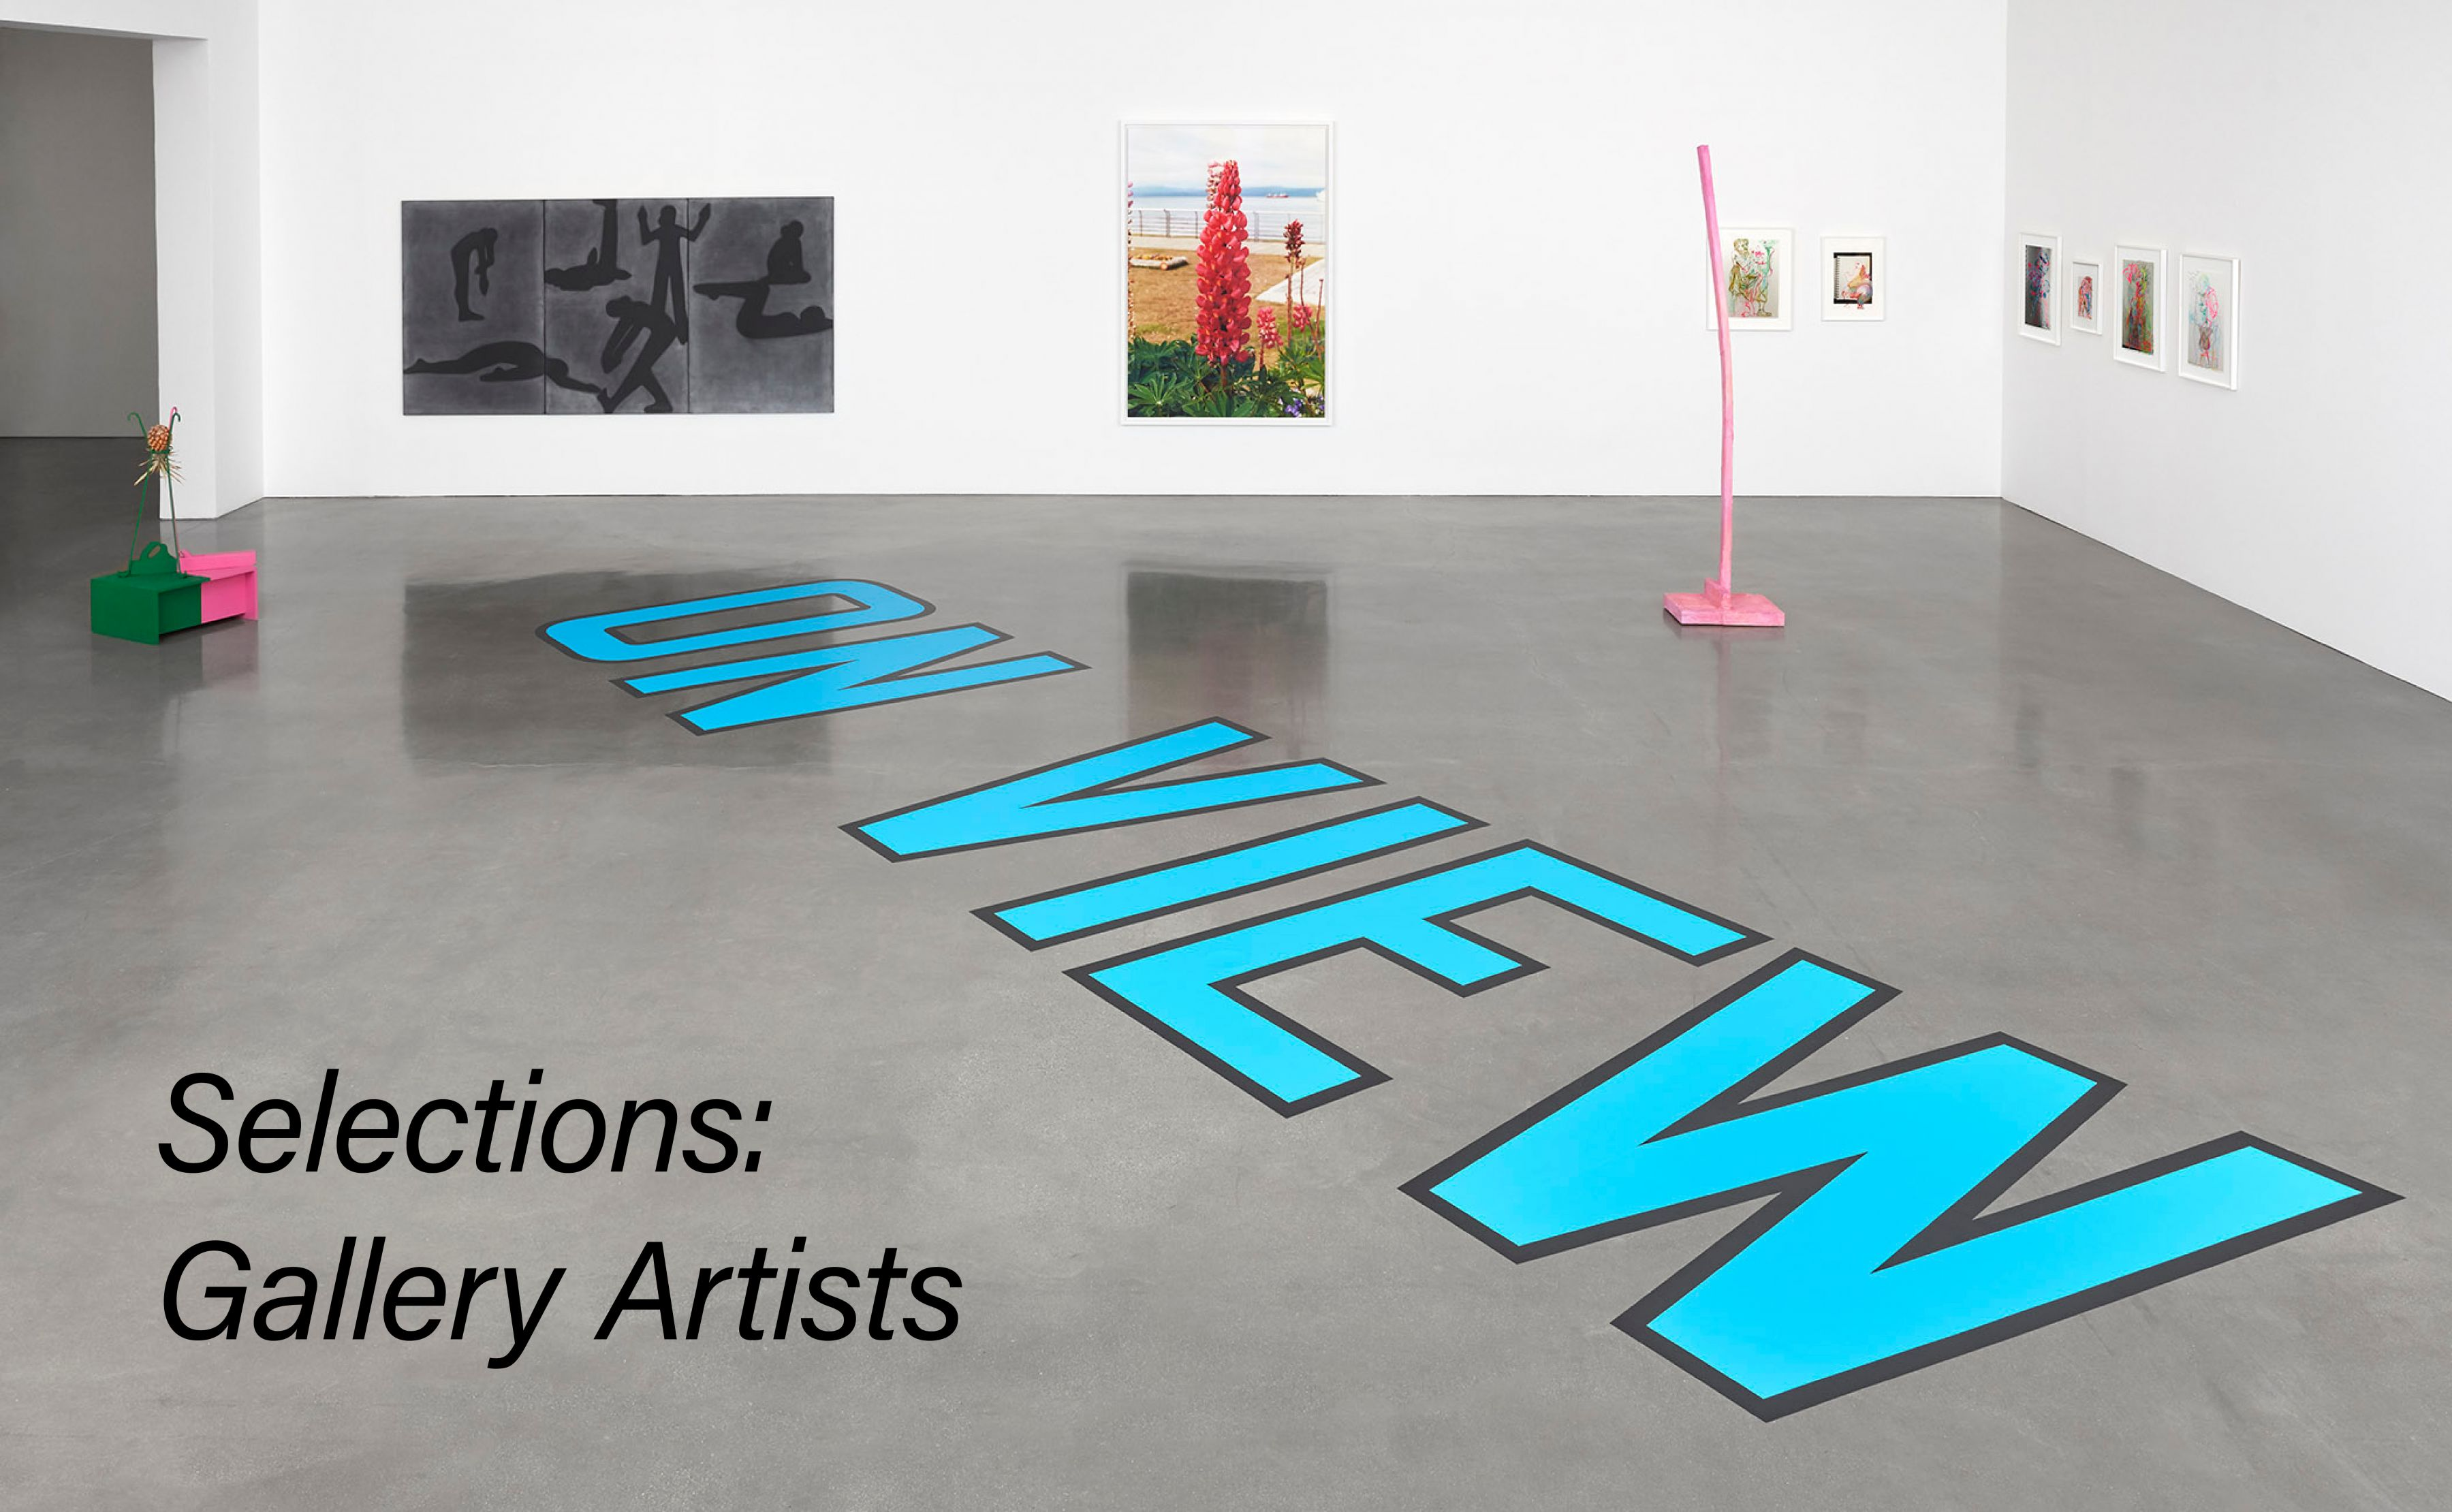 Selections: Gallery Artists